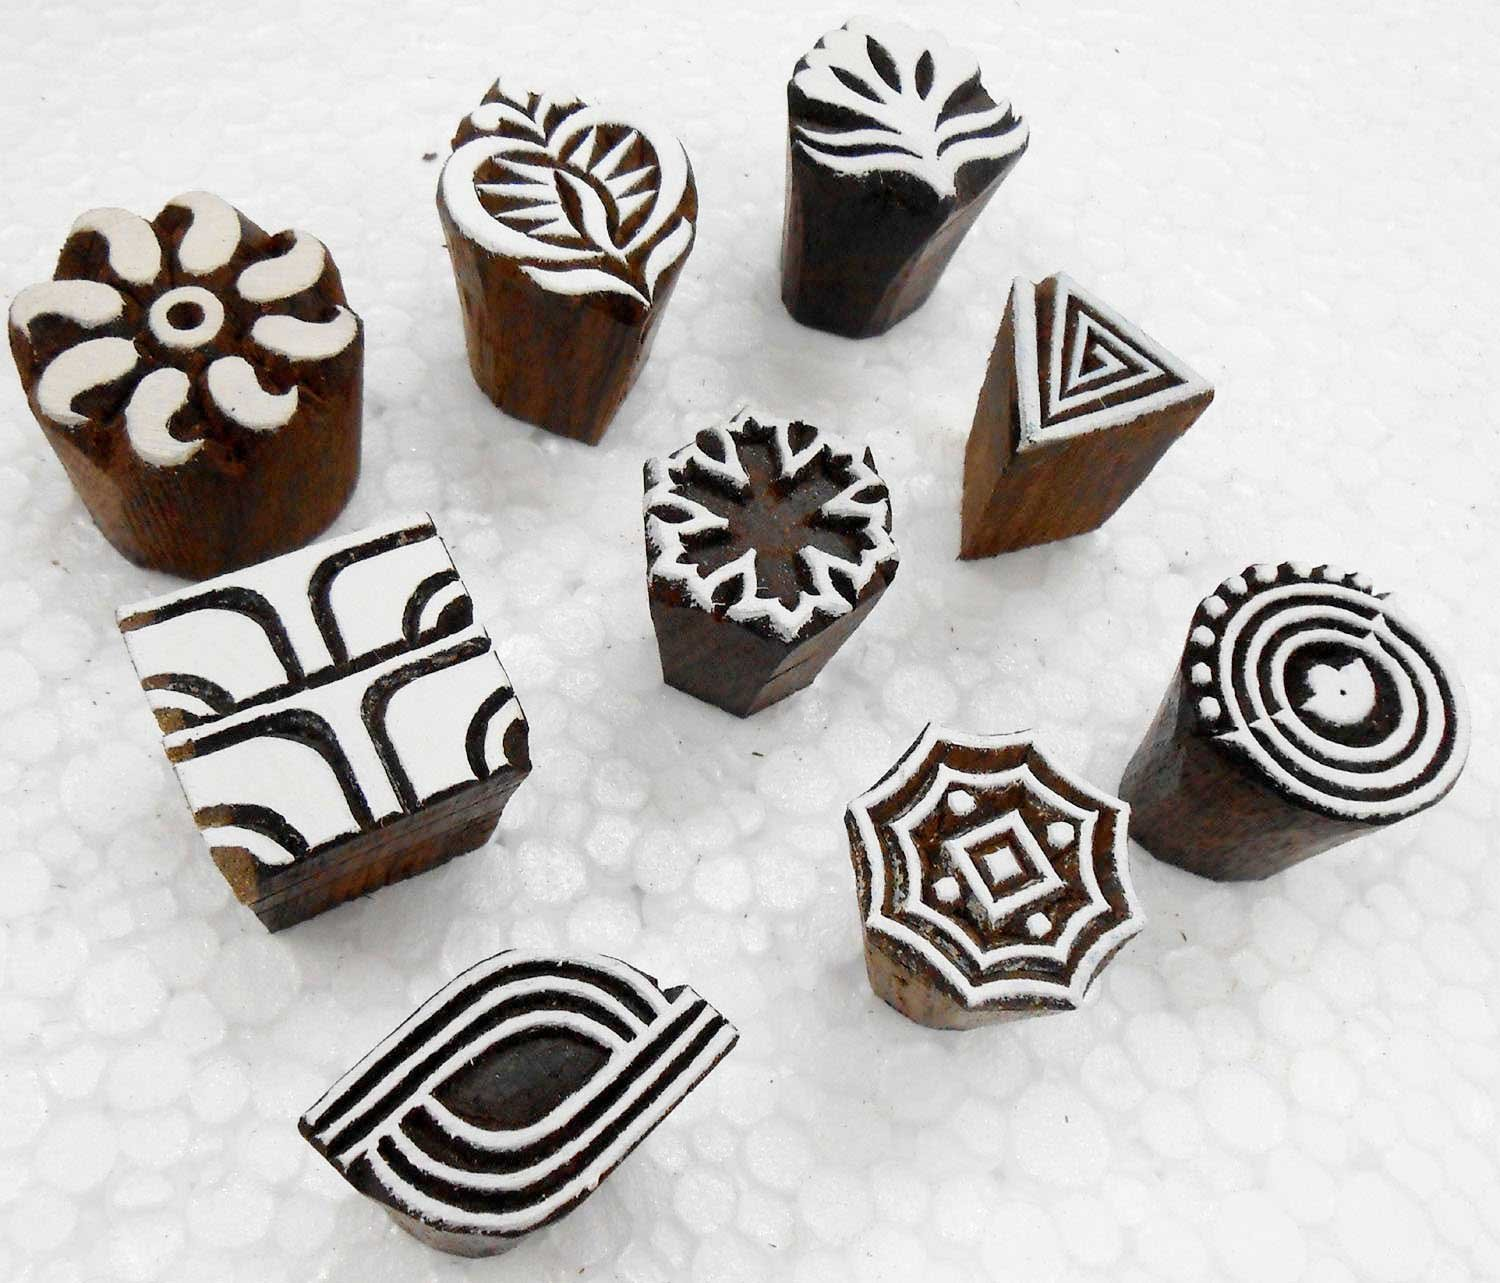 Wholesale Lot of 12 Exotic Small Wooden Block Stamps for Textile Printing// Henna Tattoo// Scrapbooking// Designing Saree Border